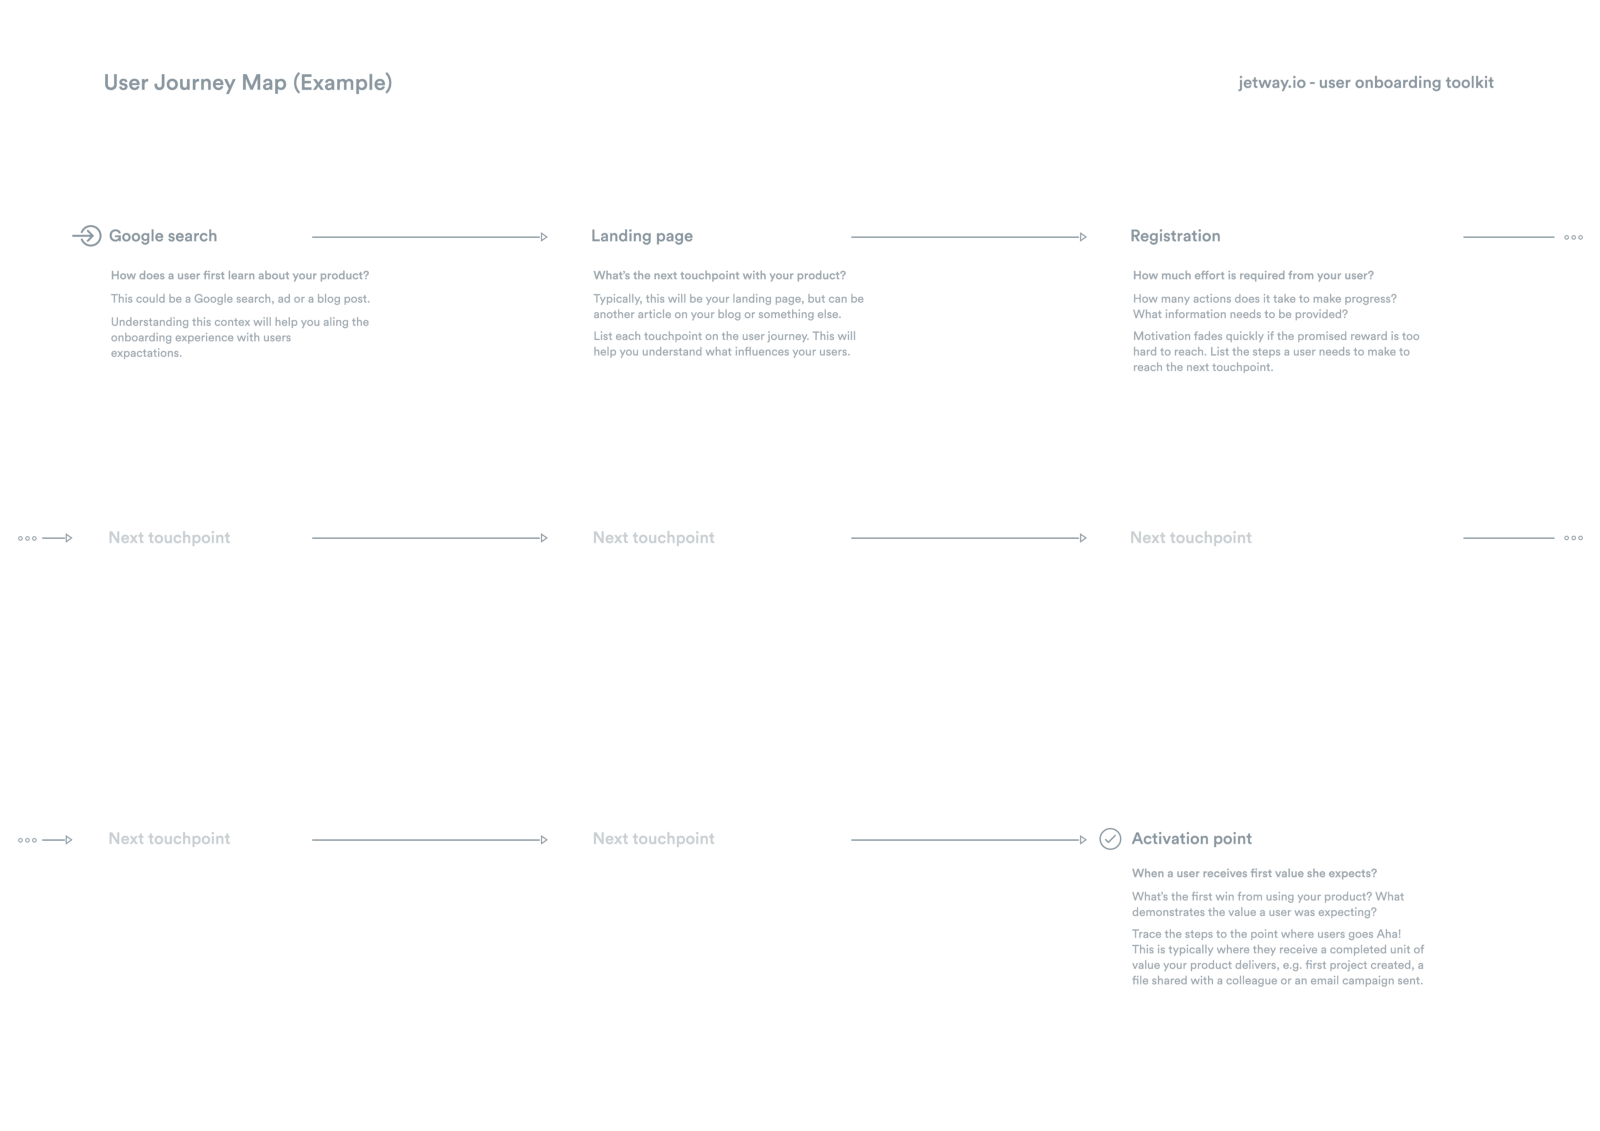 Free User Onboarding Journey Map Template PDF Onboarding IQ - Ux journey map template